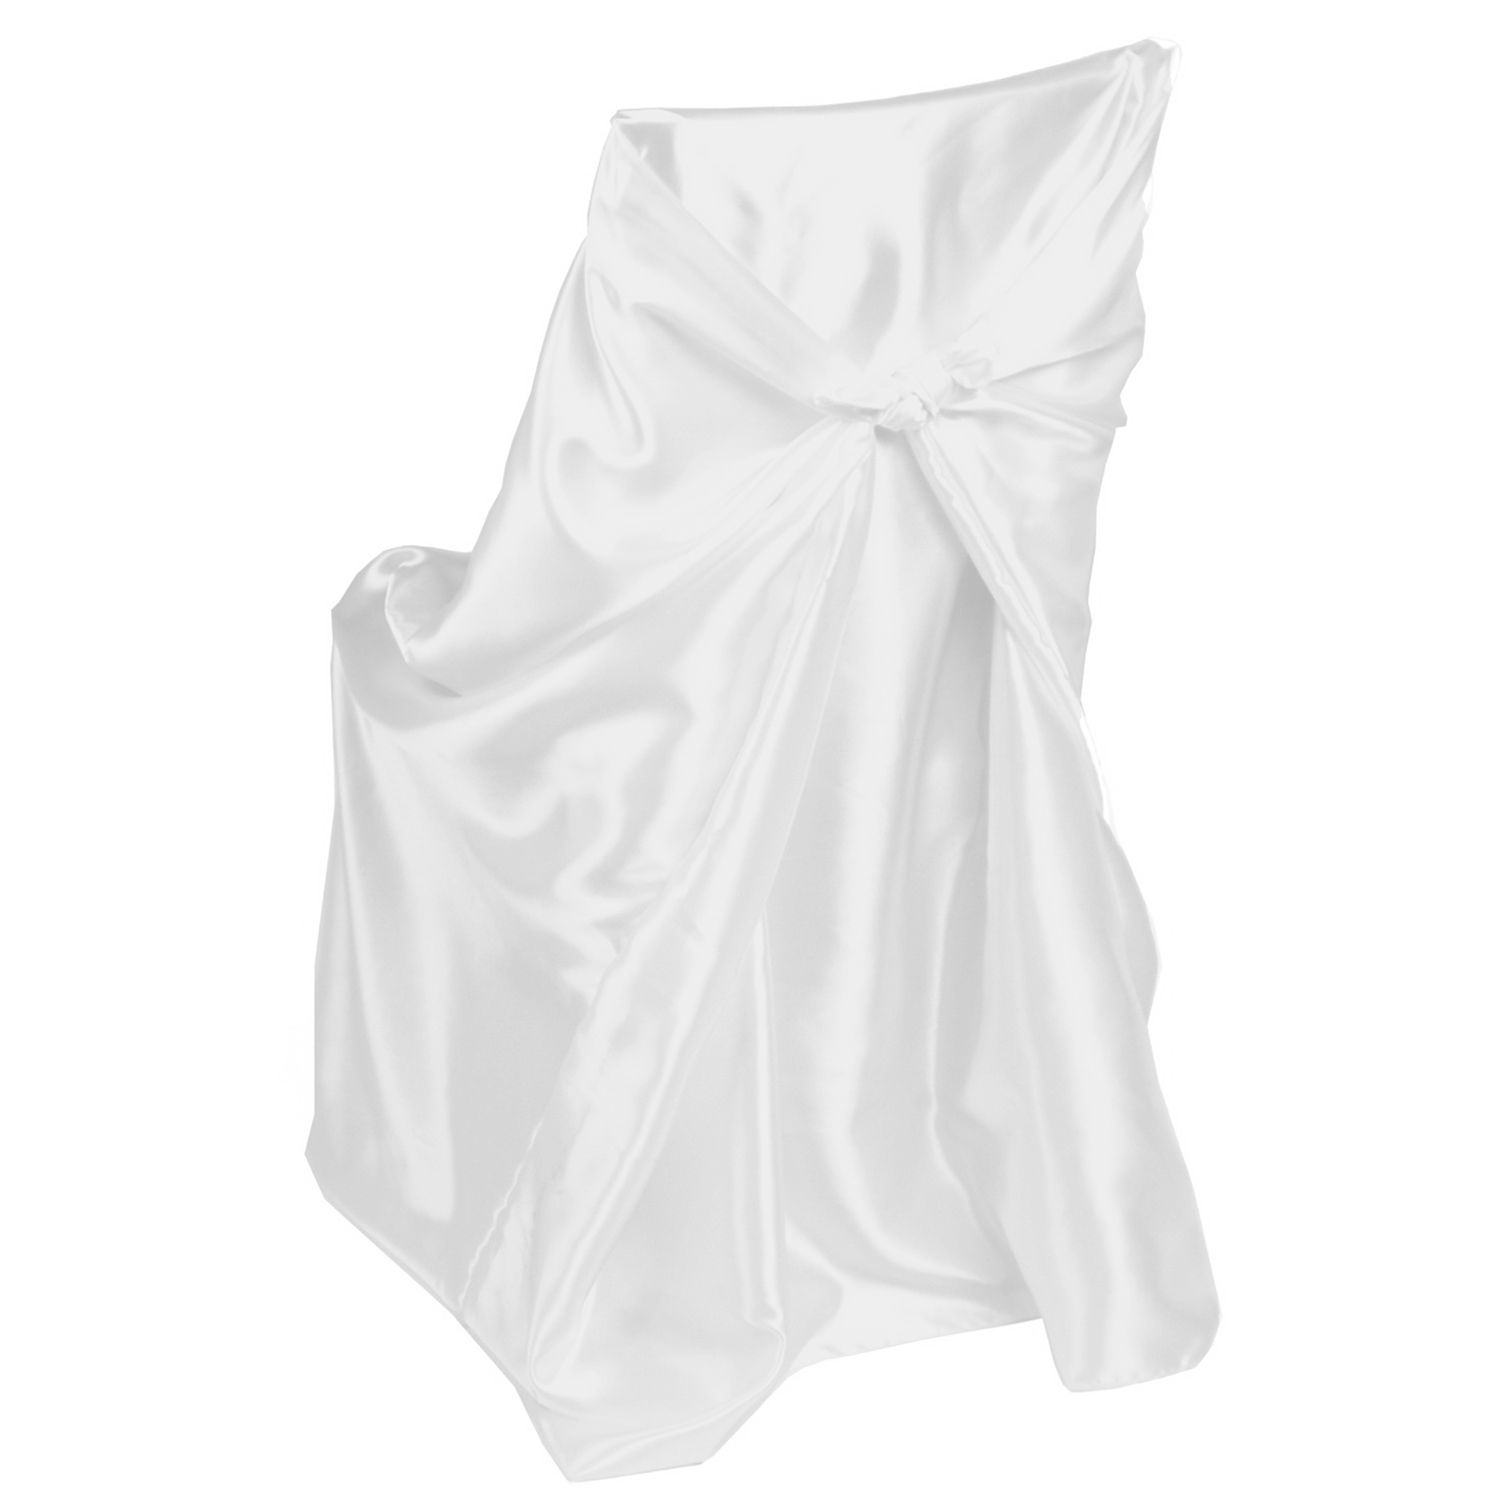 Cheap Universal Chair Covers For Sale Back Pillow Bed What S So Great About They Fit Almost Any Type Making Them Our Most Versatile Cover Designed To Provide Banquet